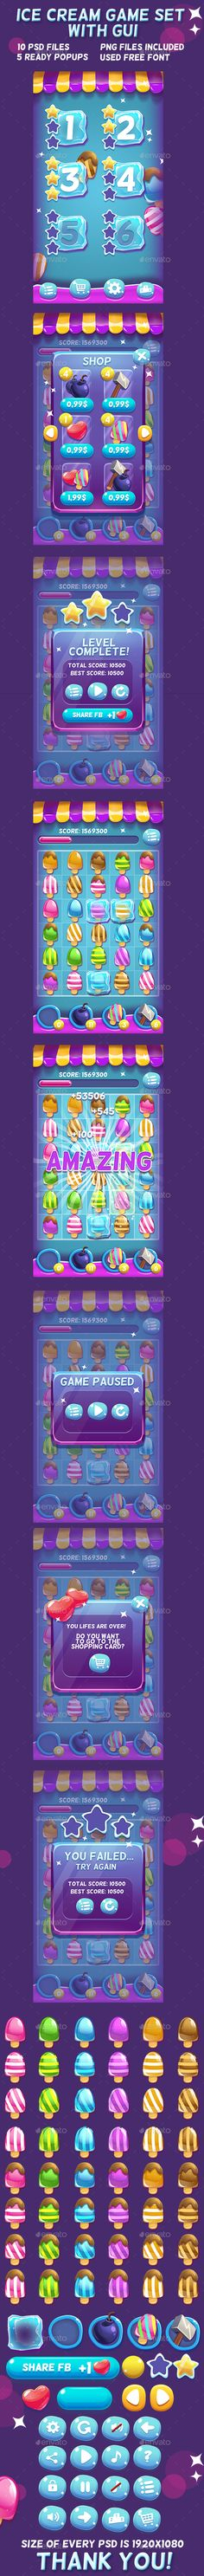 Ice Cream Game Set with UI